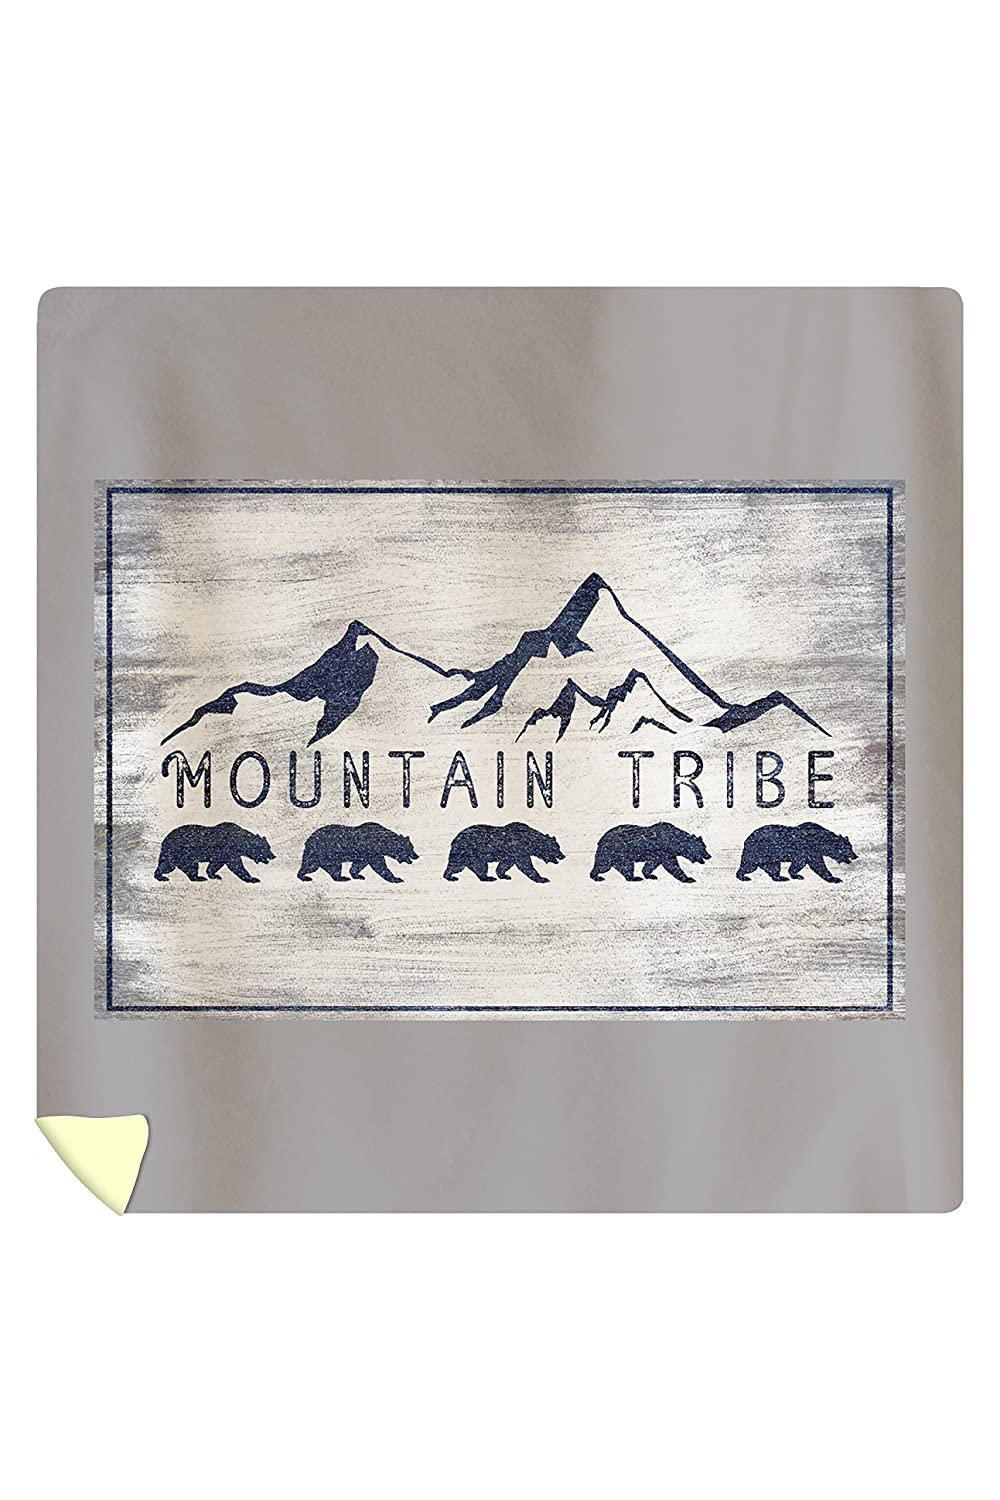 Amazon.com: Mountain Tribe - Grizzly Bear and Mountains - Rustic (88x88 Queen Microfiber Duvet Cover): Home & Kitchen